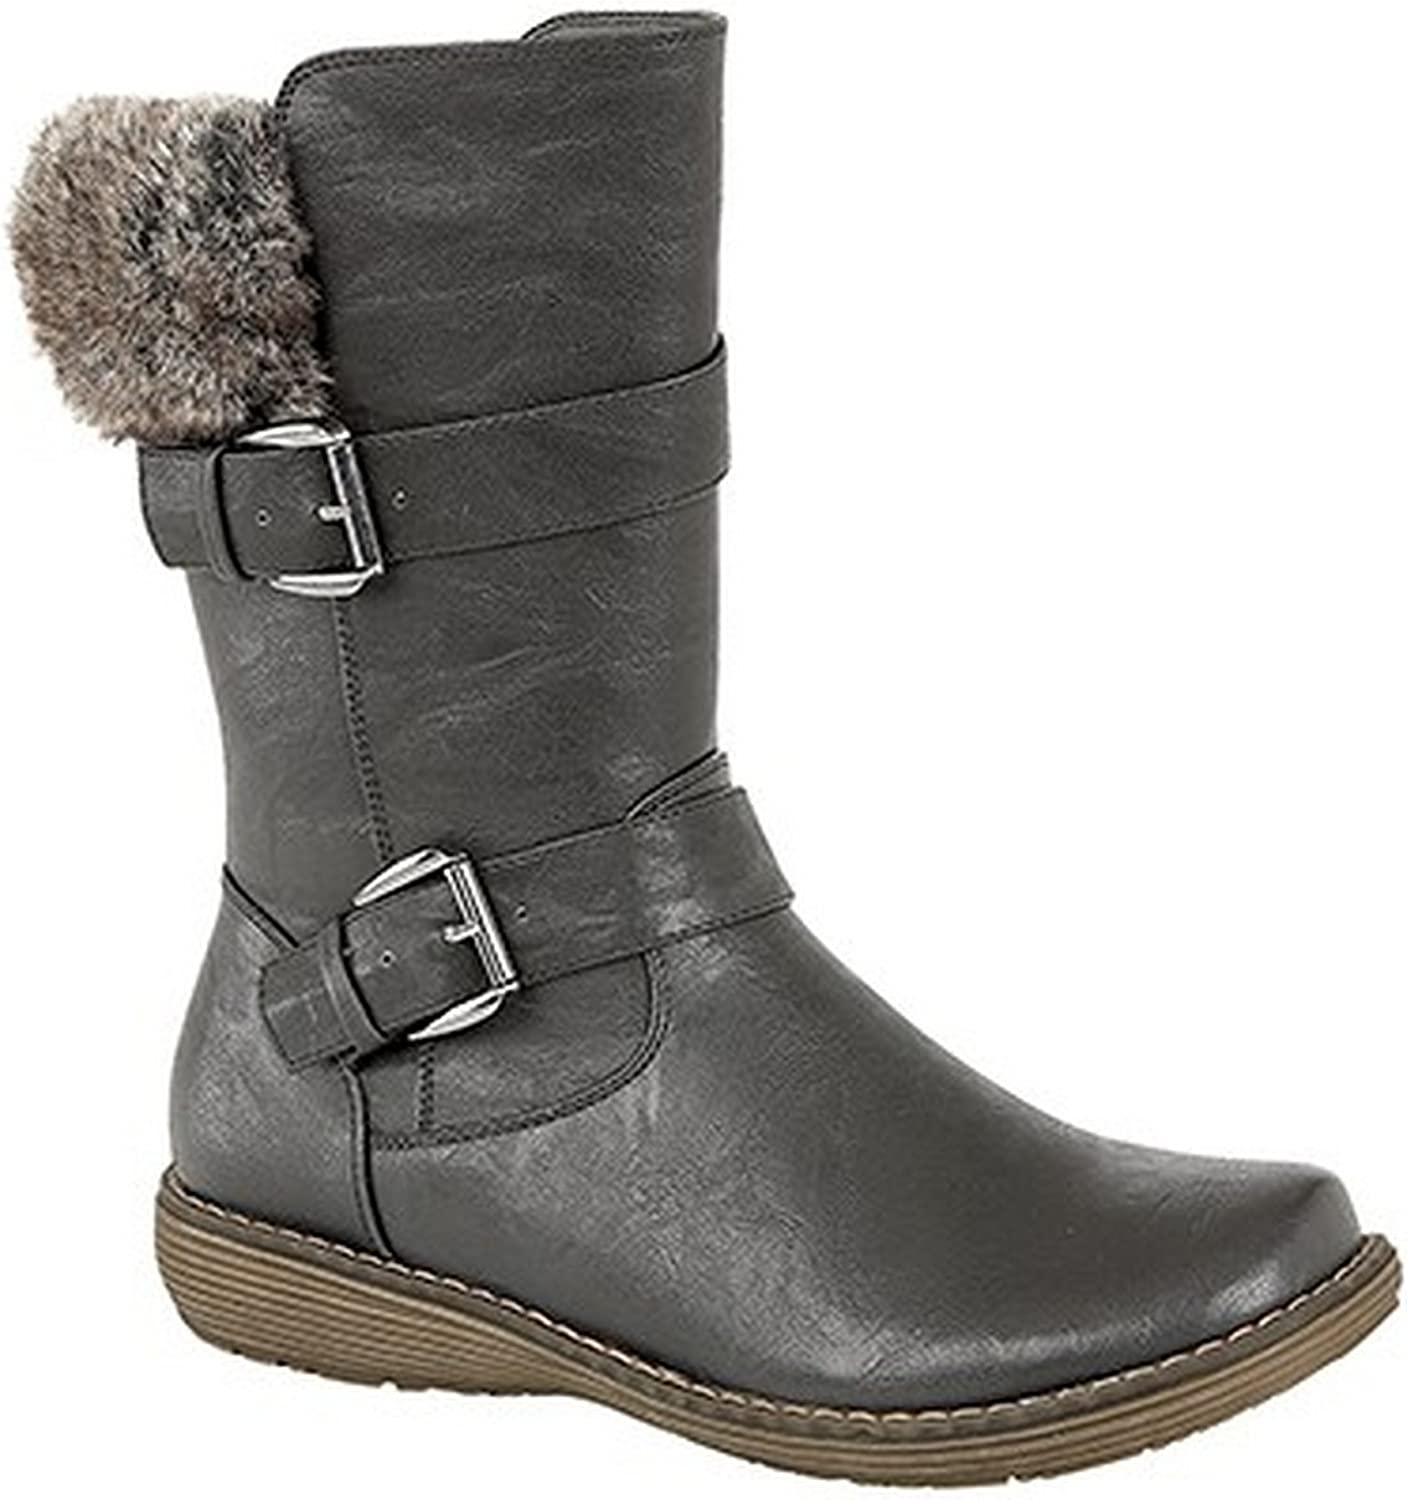 Cats Eyes Womens Ladies Twin Buckle Mid Calf Boots